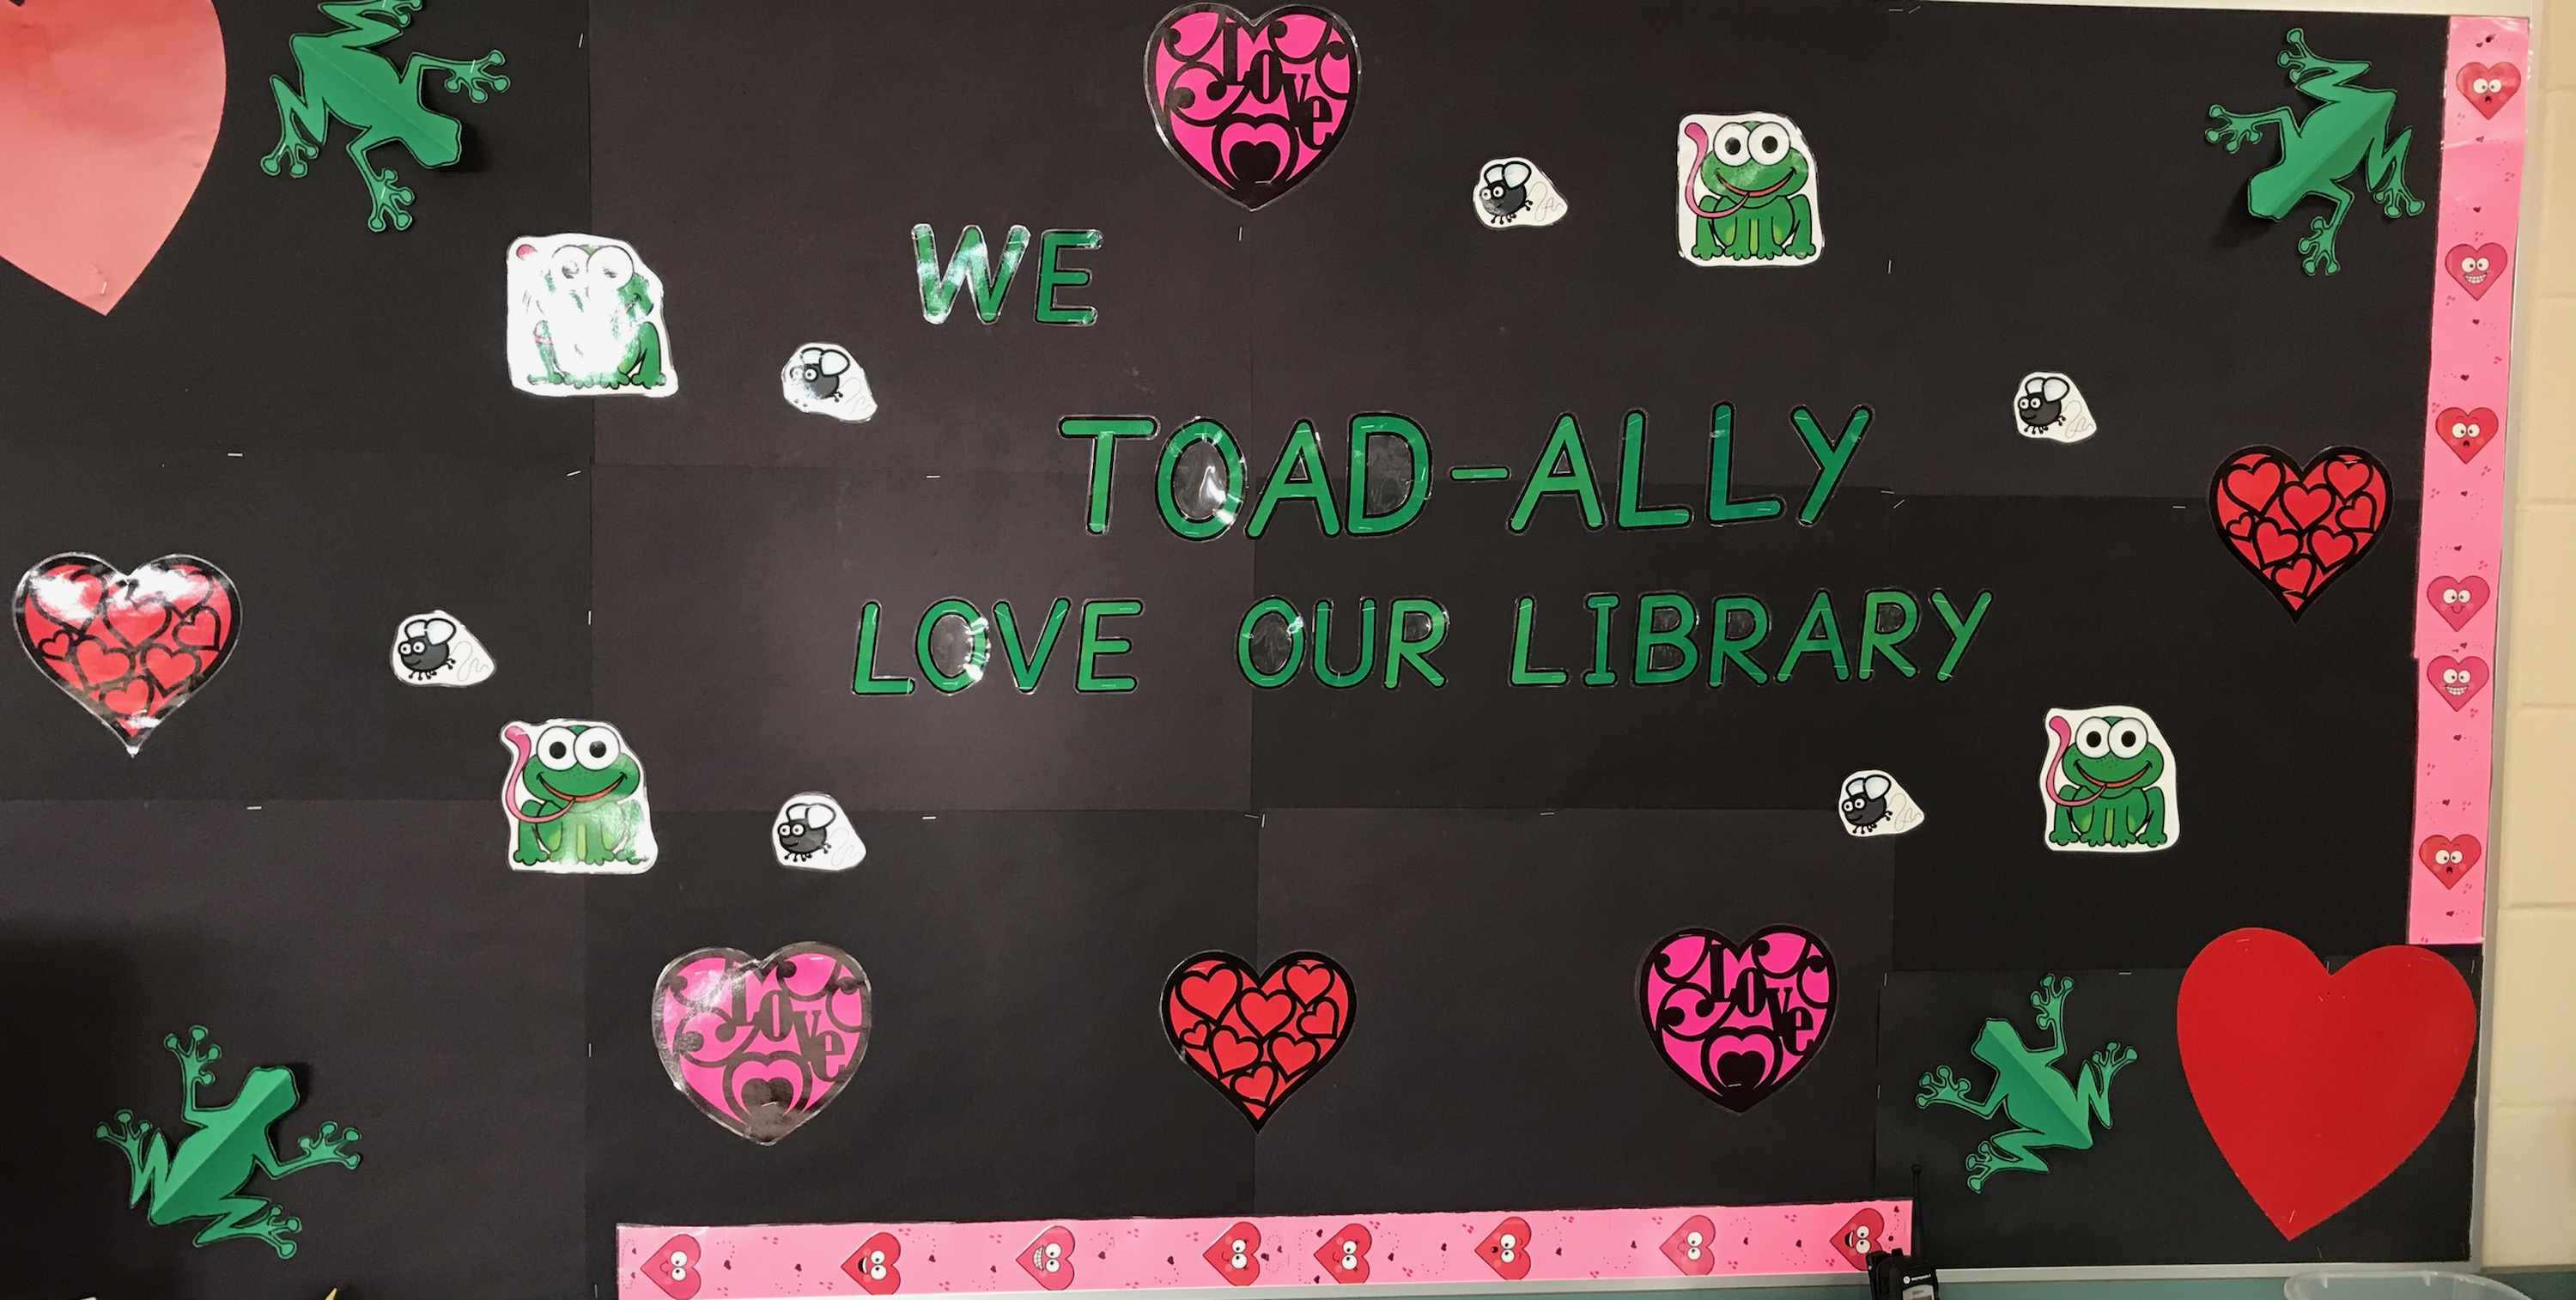 Toad-Ally Love